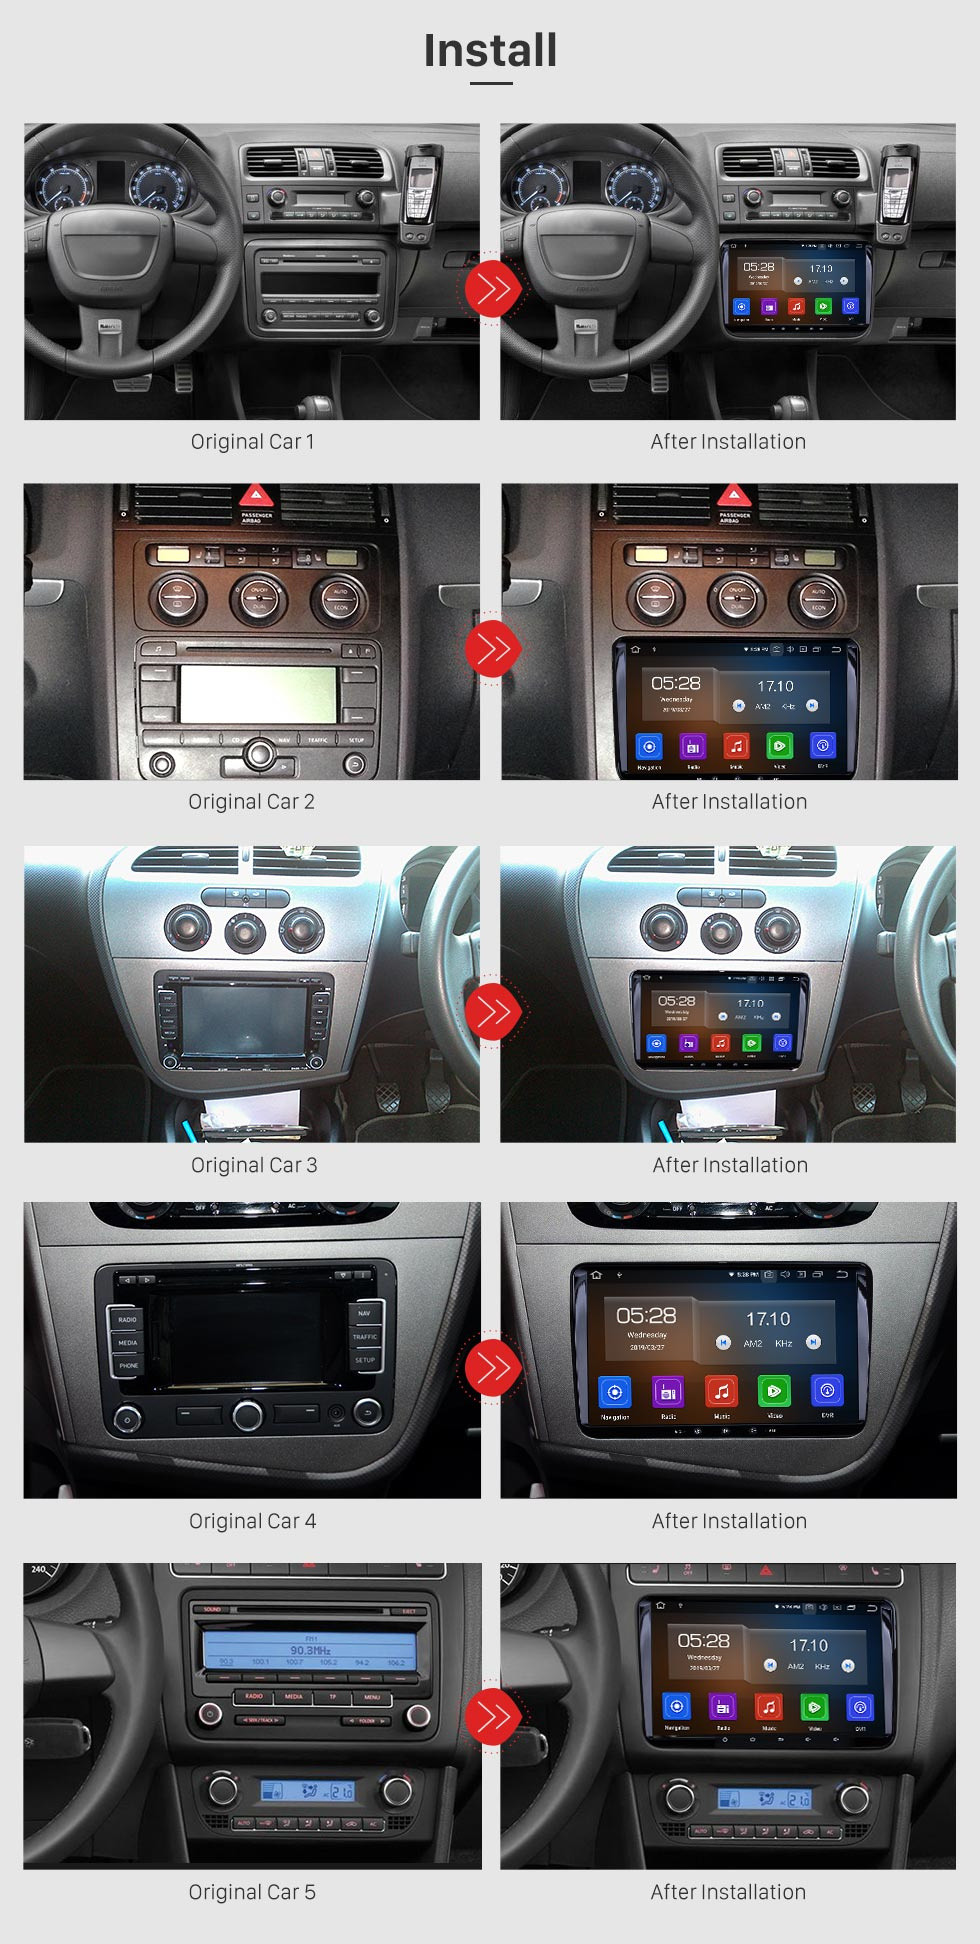 Seicane Aftermarket Android 10.0 GPS Navigation System for 2009-2013 VW Volkswagen BORA Polo V 6R Support Radio Bluetooth 3G WiFi DVD Player Mirror Link OBD2 DVR Backup Camera Video